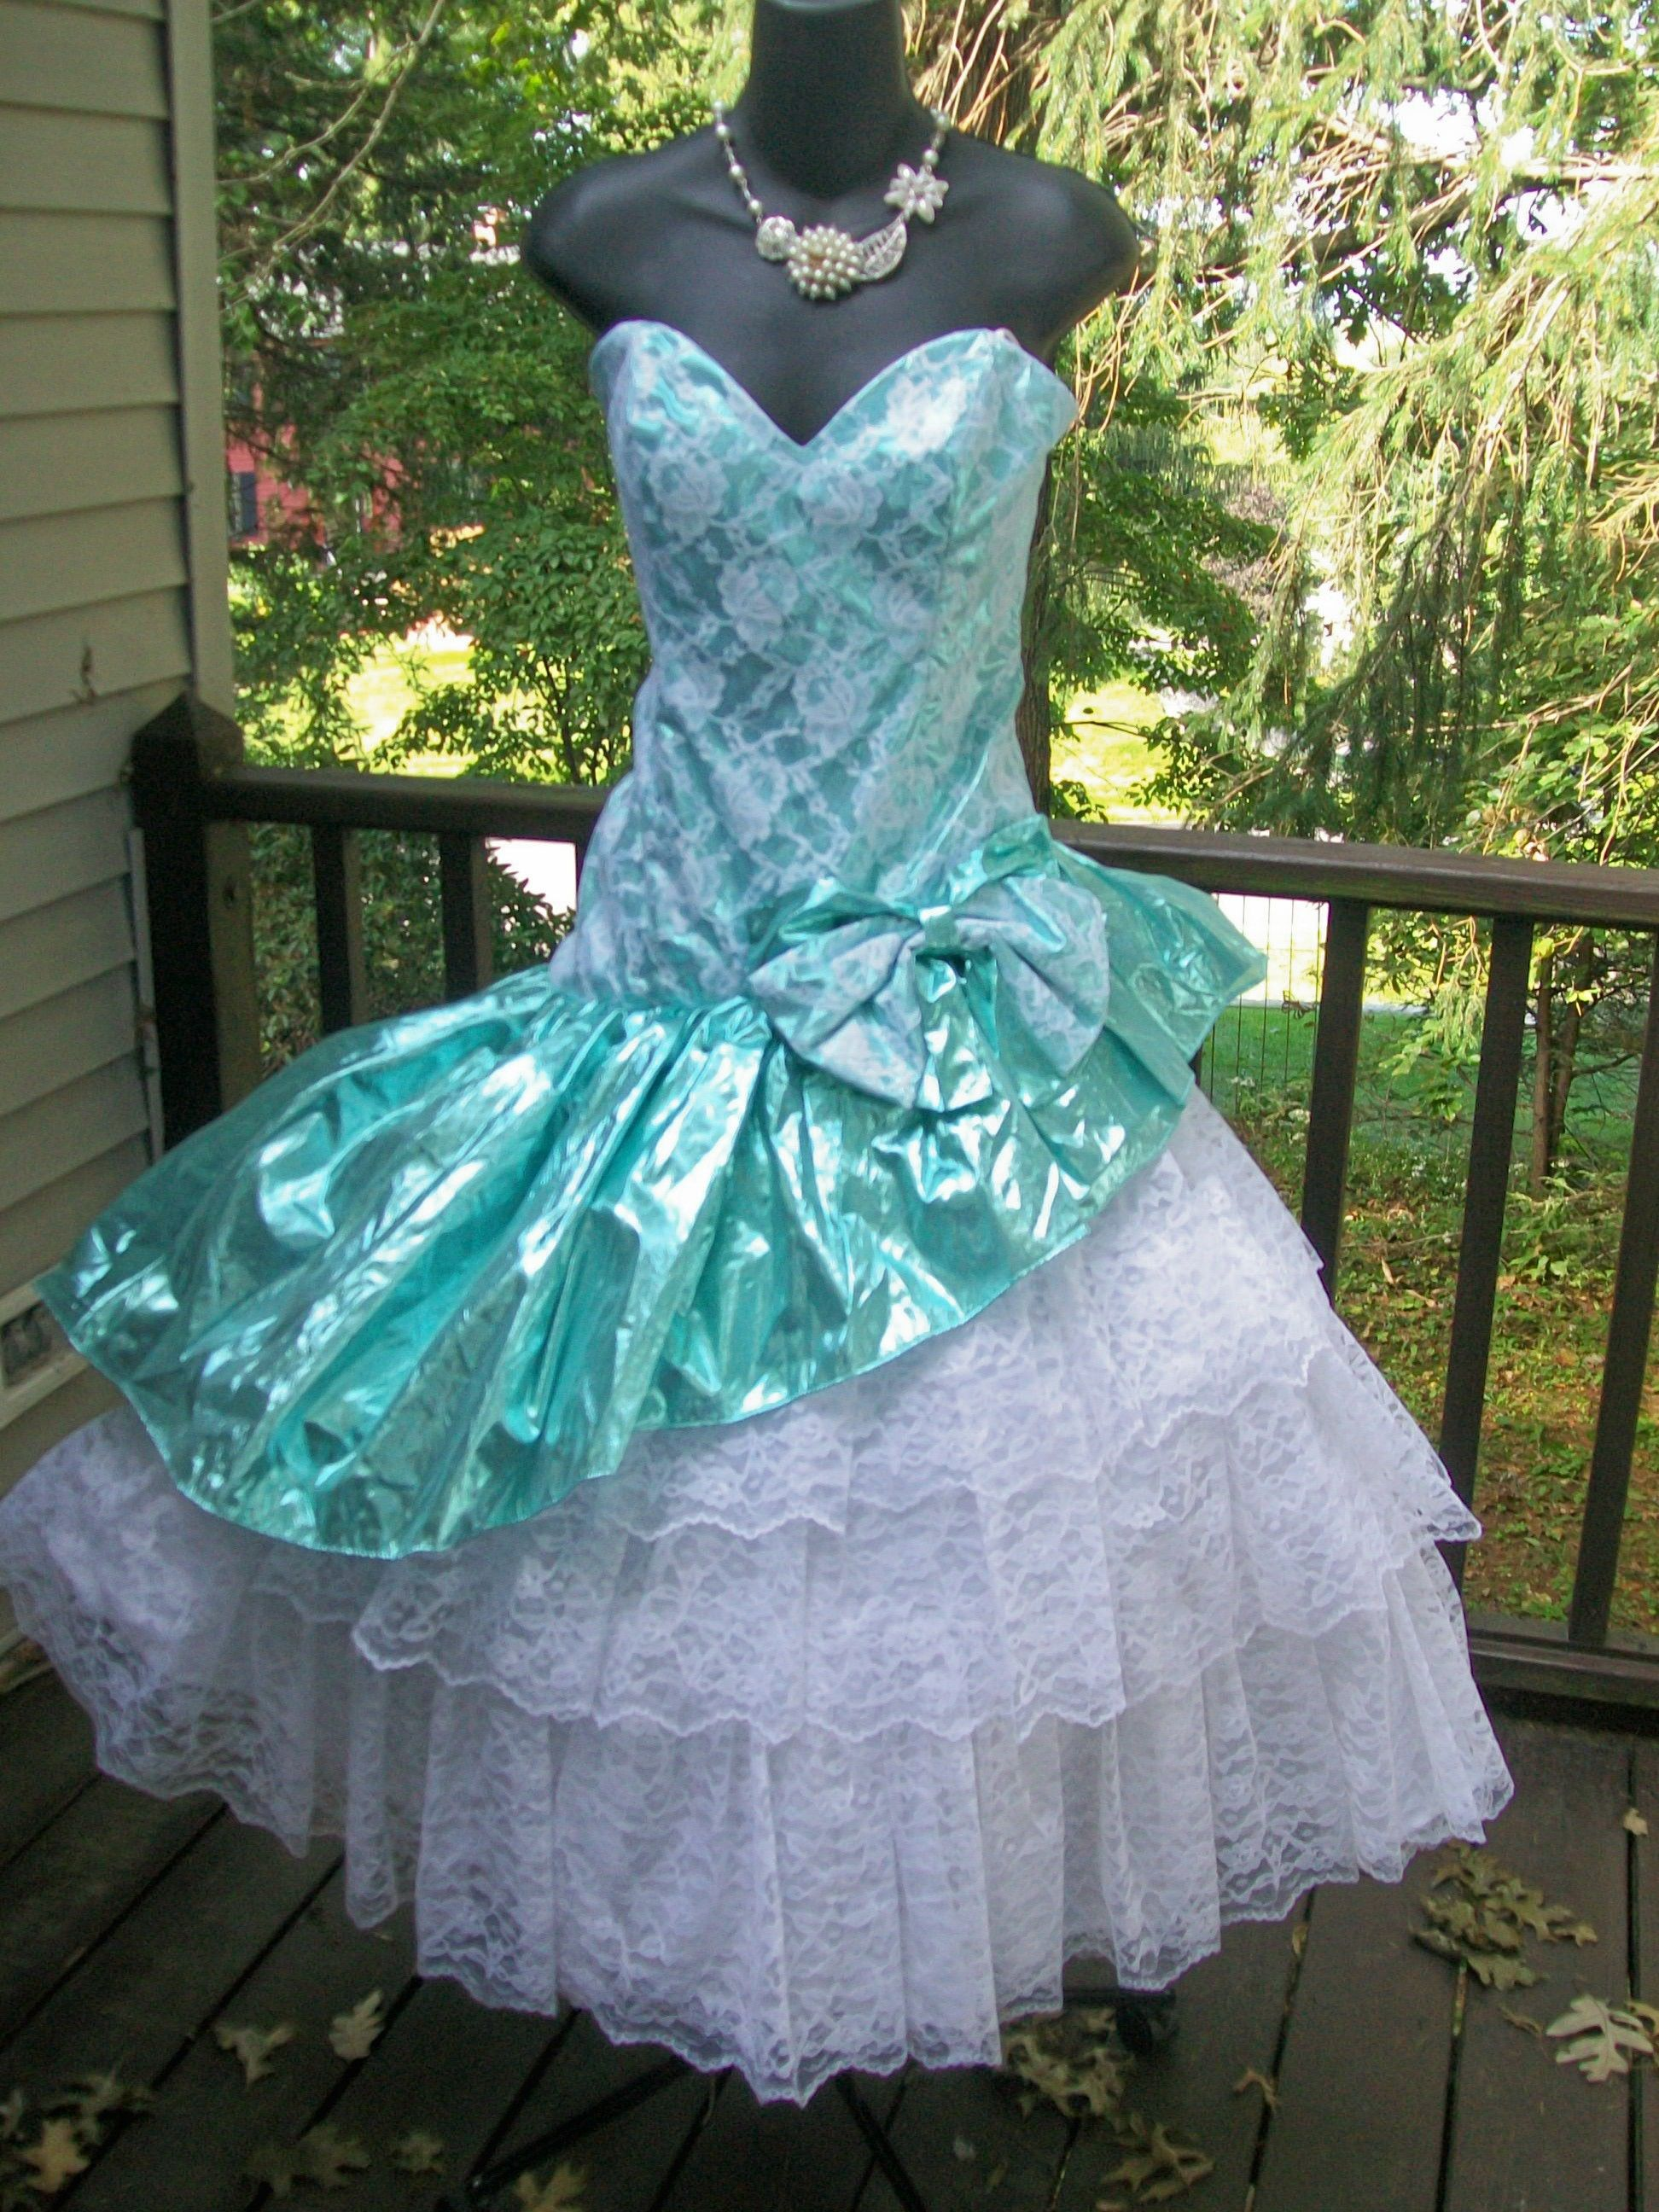 Costume prom dresses cheap